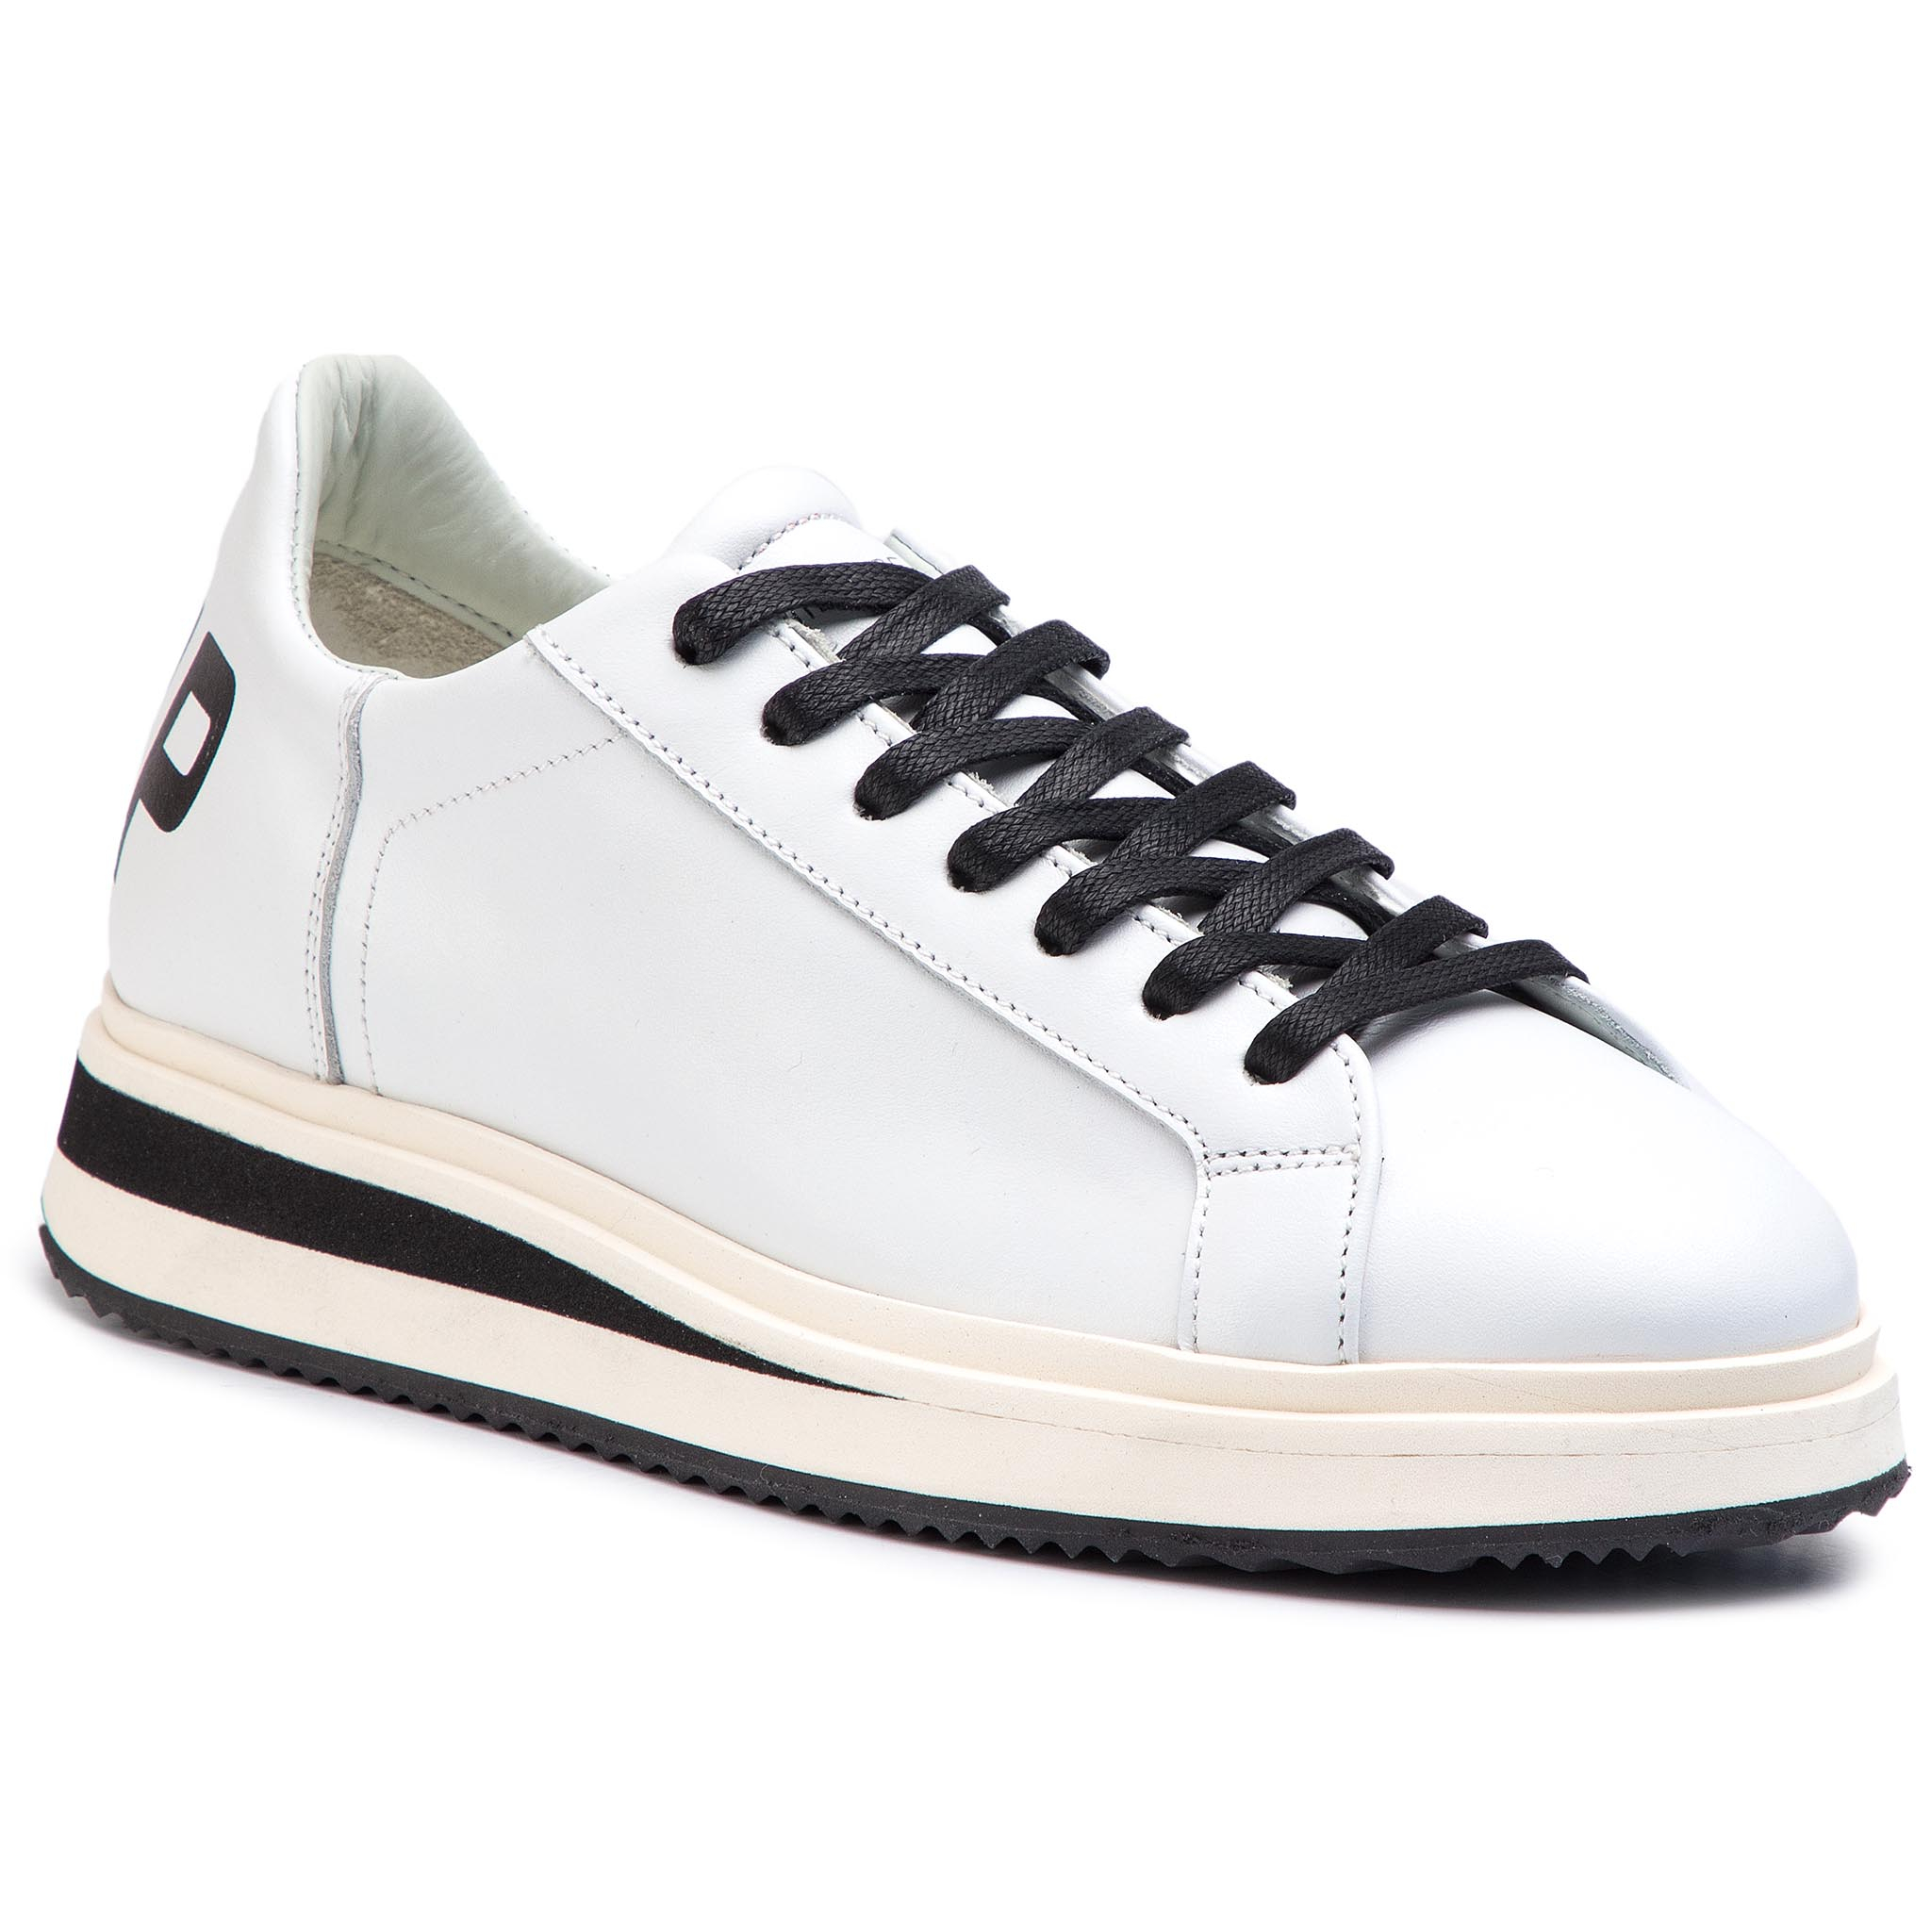 Sneakers PHILIPPE MODEL - Vendome VELD VP04 Blanc Noir